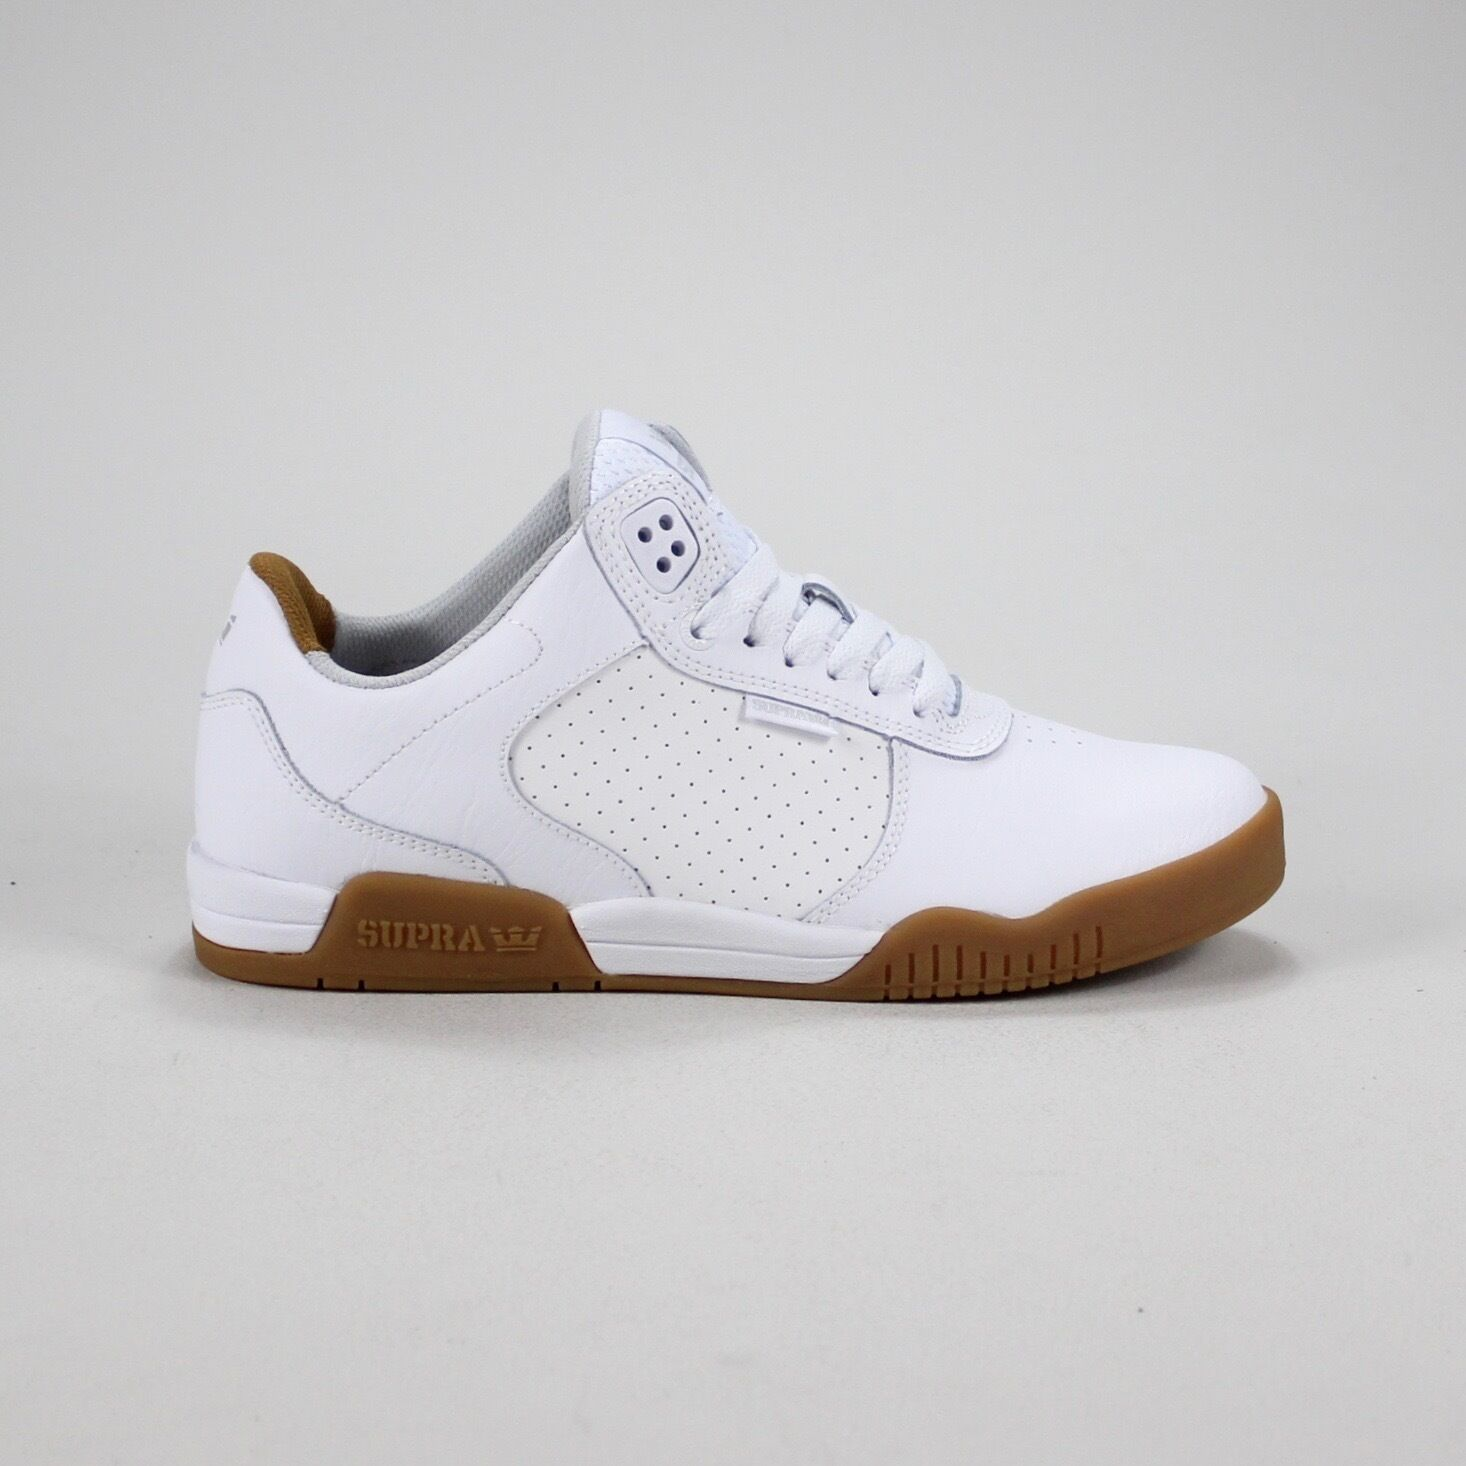 Supra Ellington Skate Trainers new in box blanc/Gum inTaille 7,8,9,10